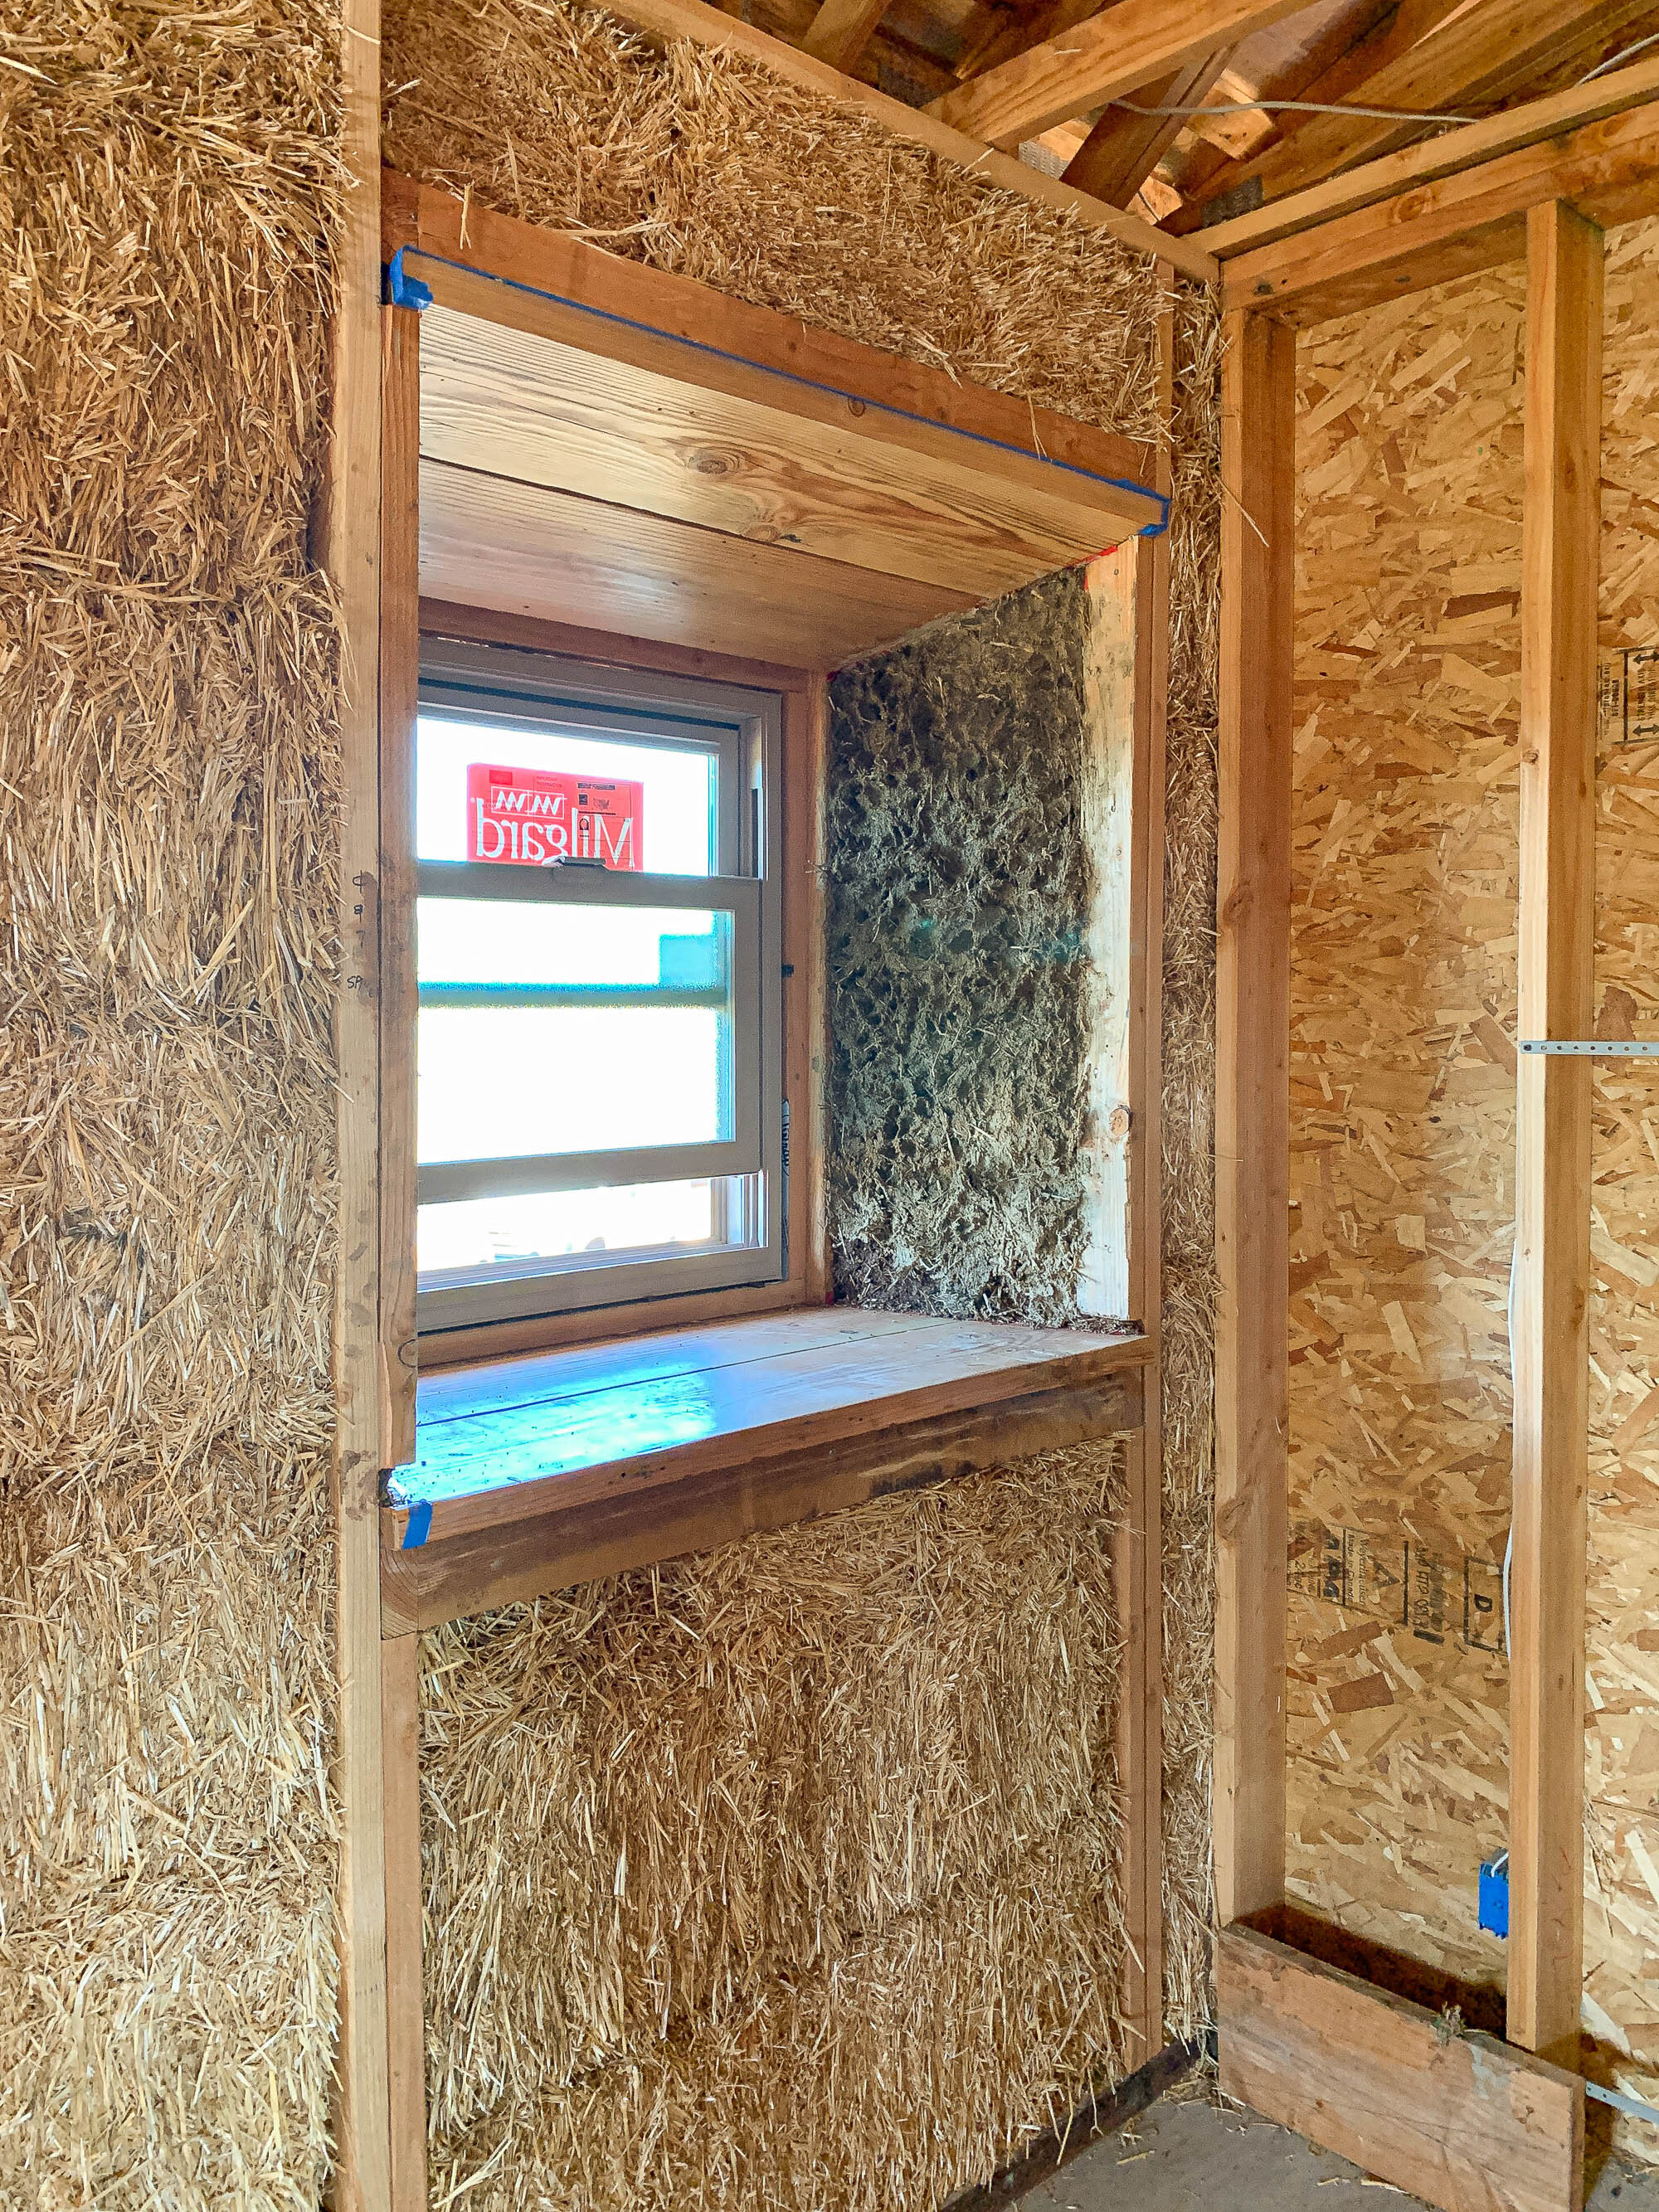 The Gold Hive Straw Bale Construction-9656.jpg